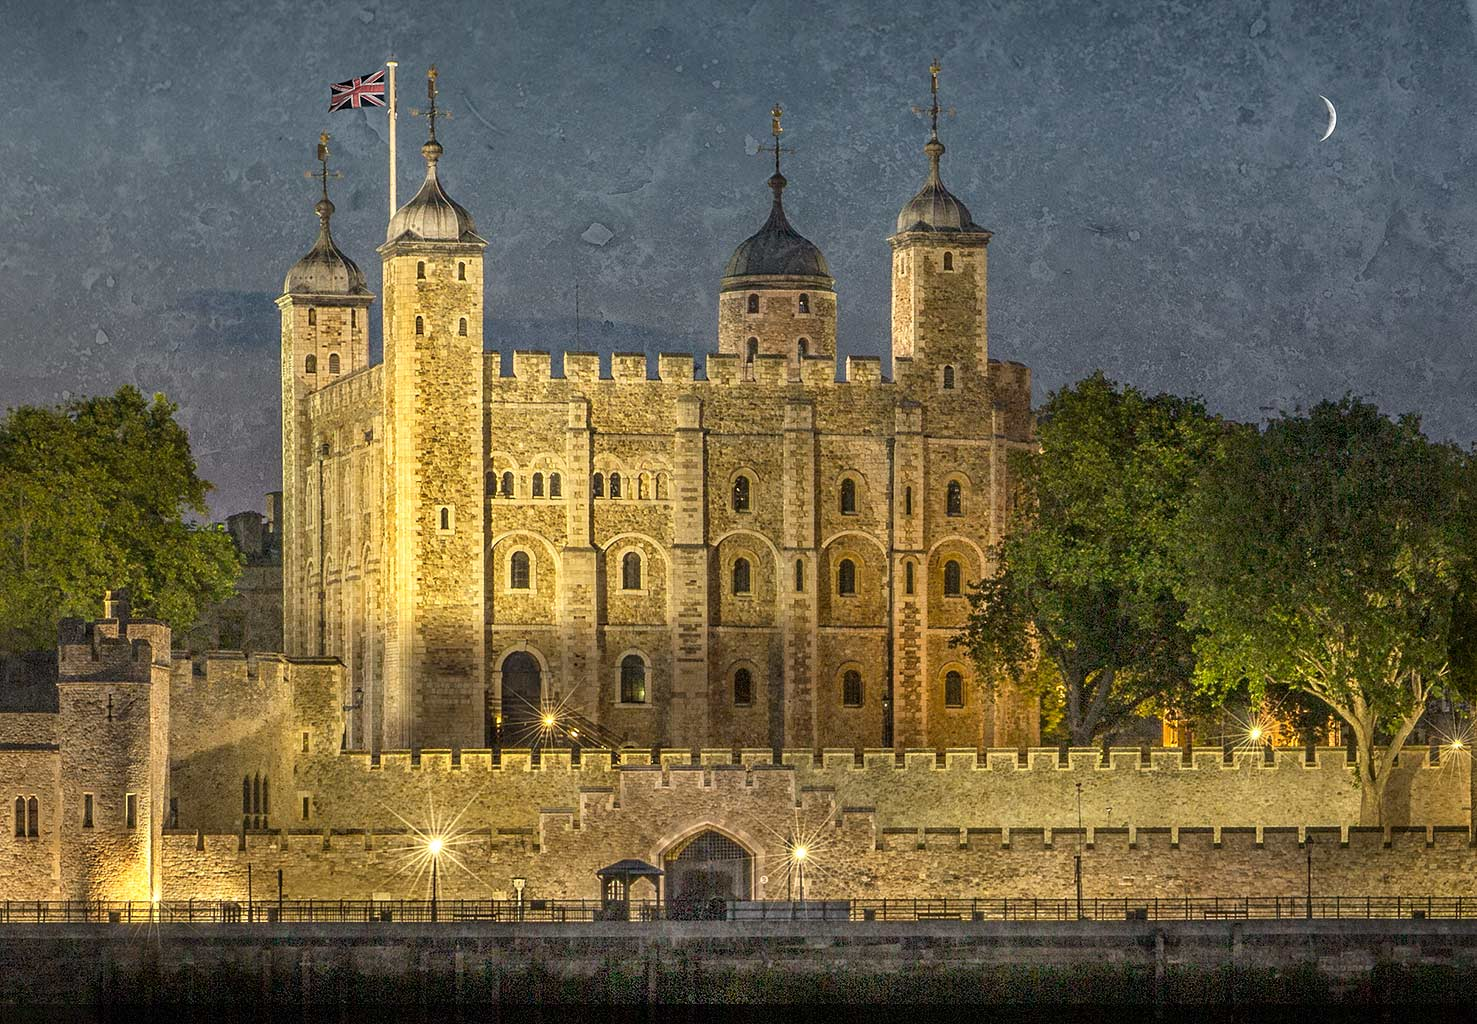 London Tower Of London at Night and River Thames textured with crescent moon